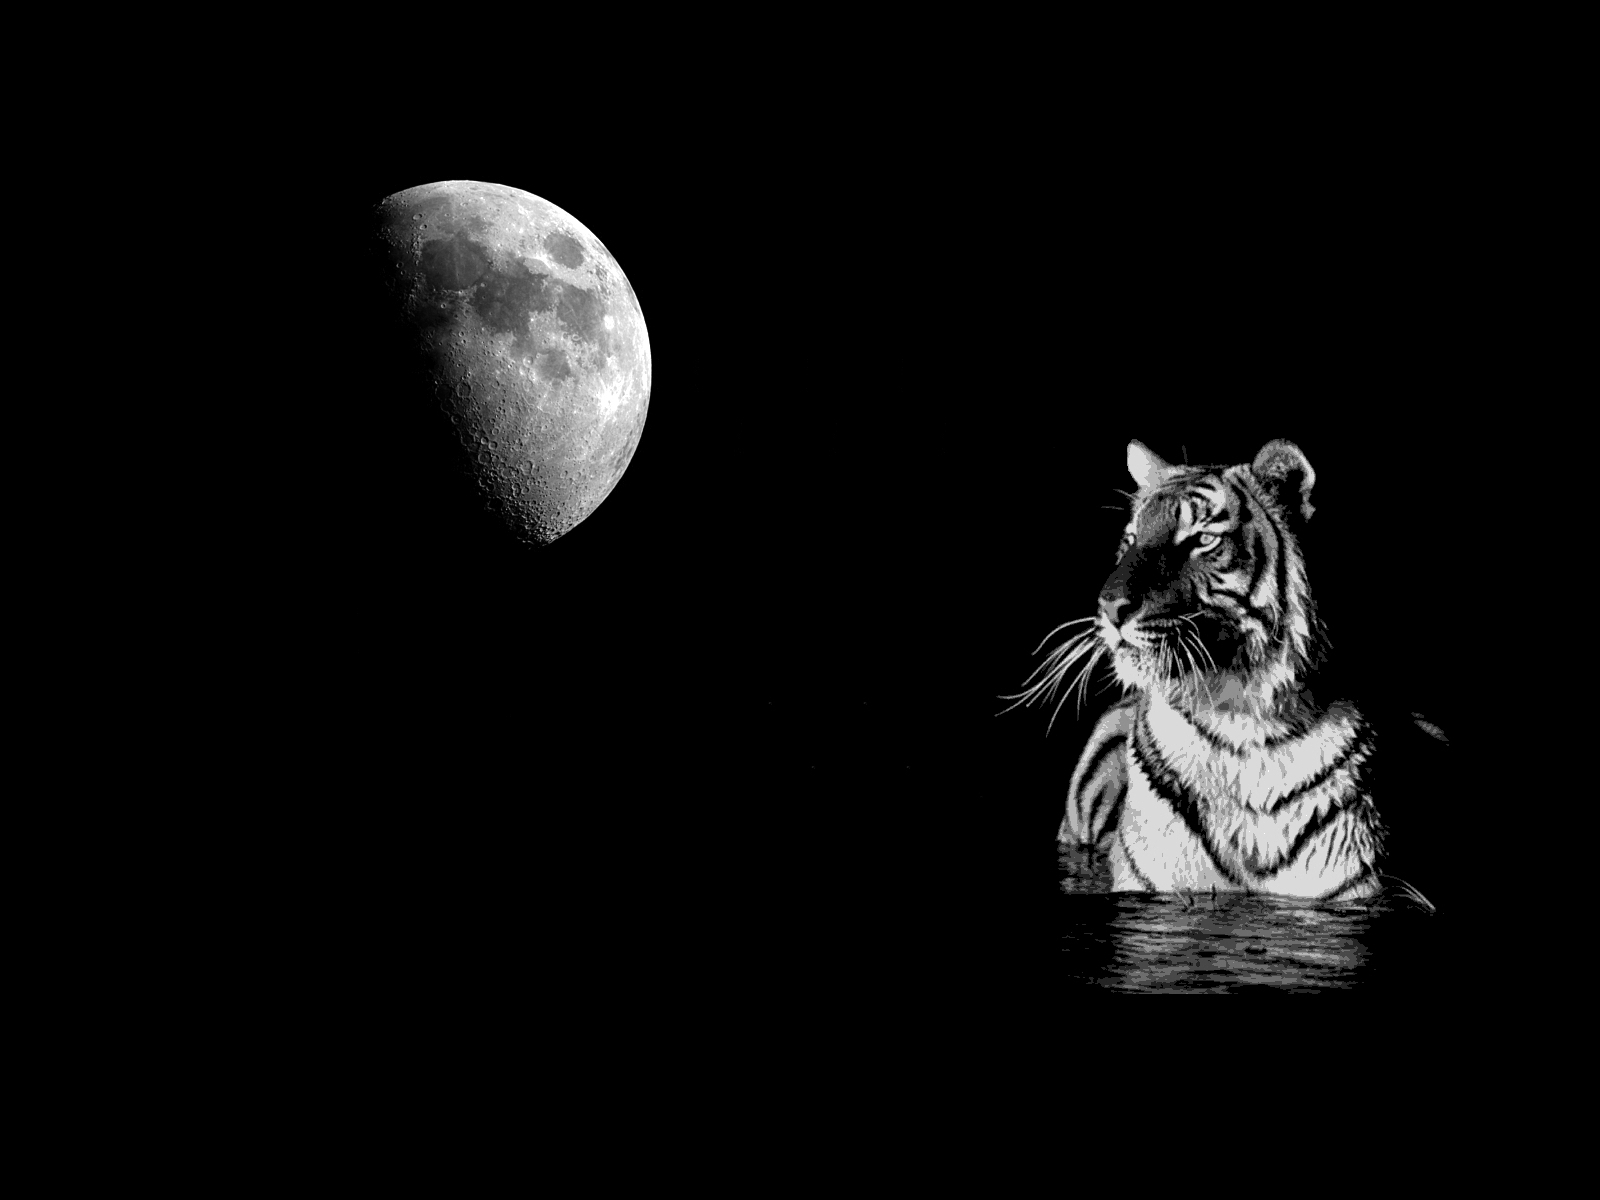 white tiger images tiger moon hd wallpaper and background photos